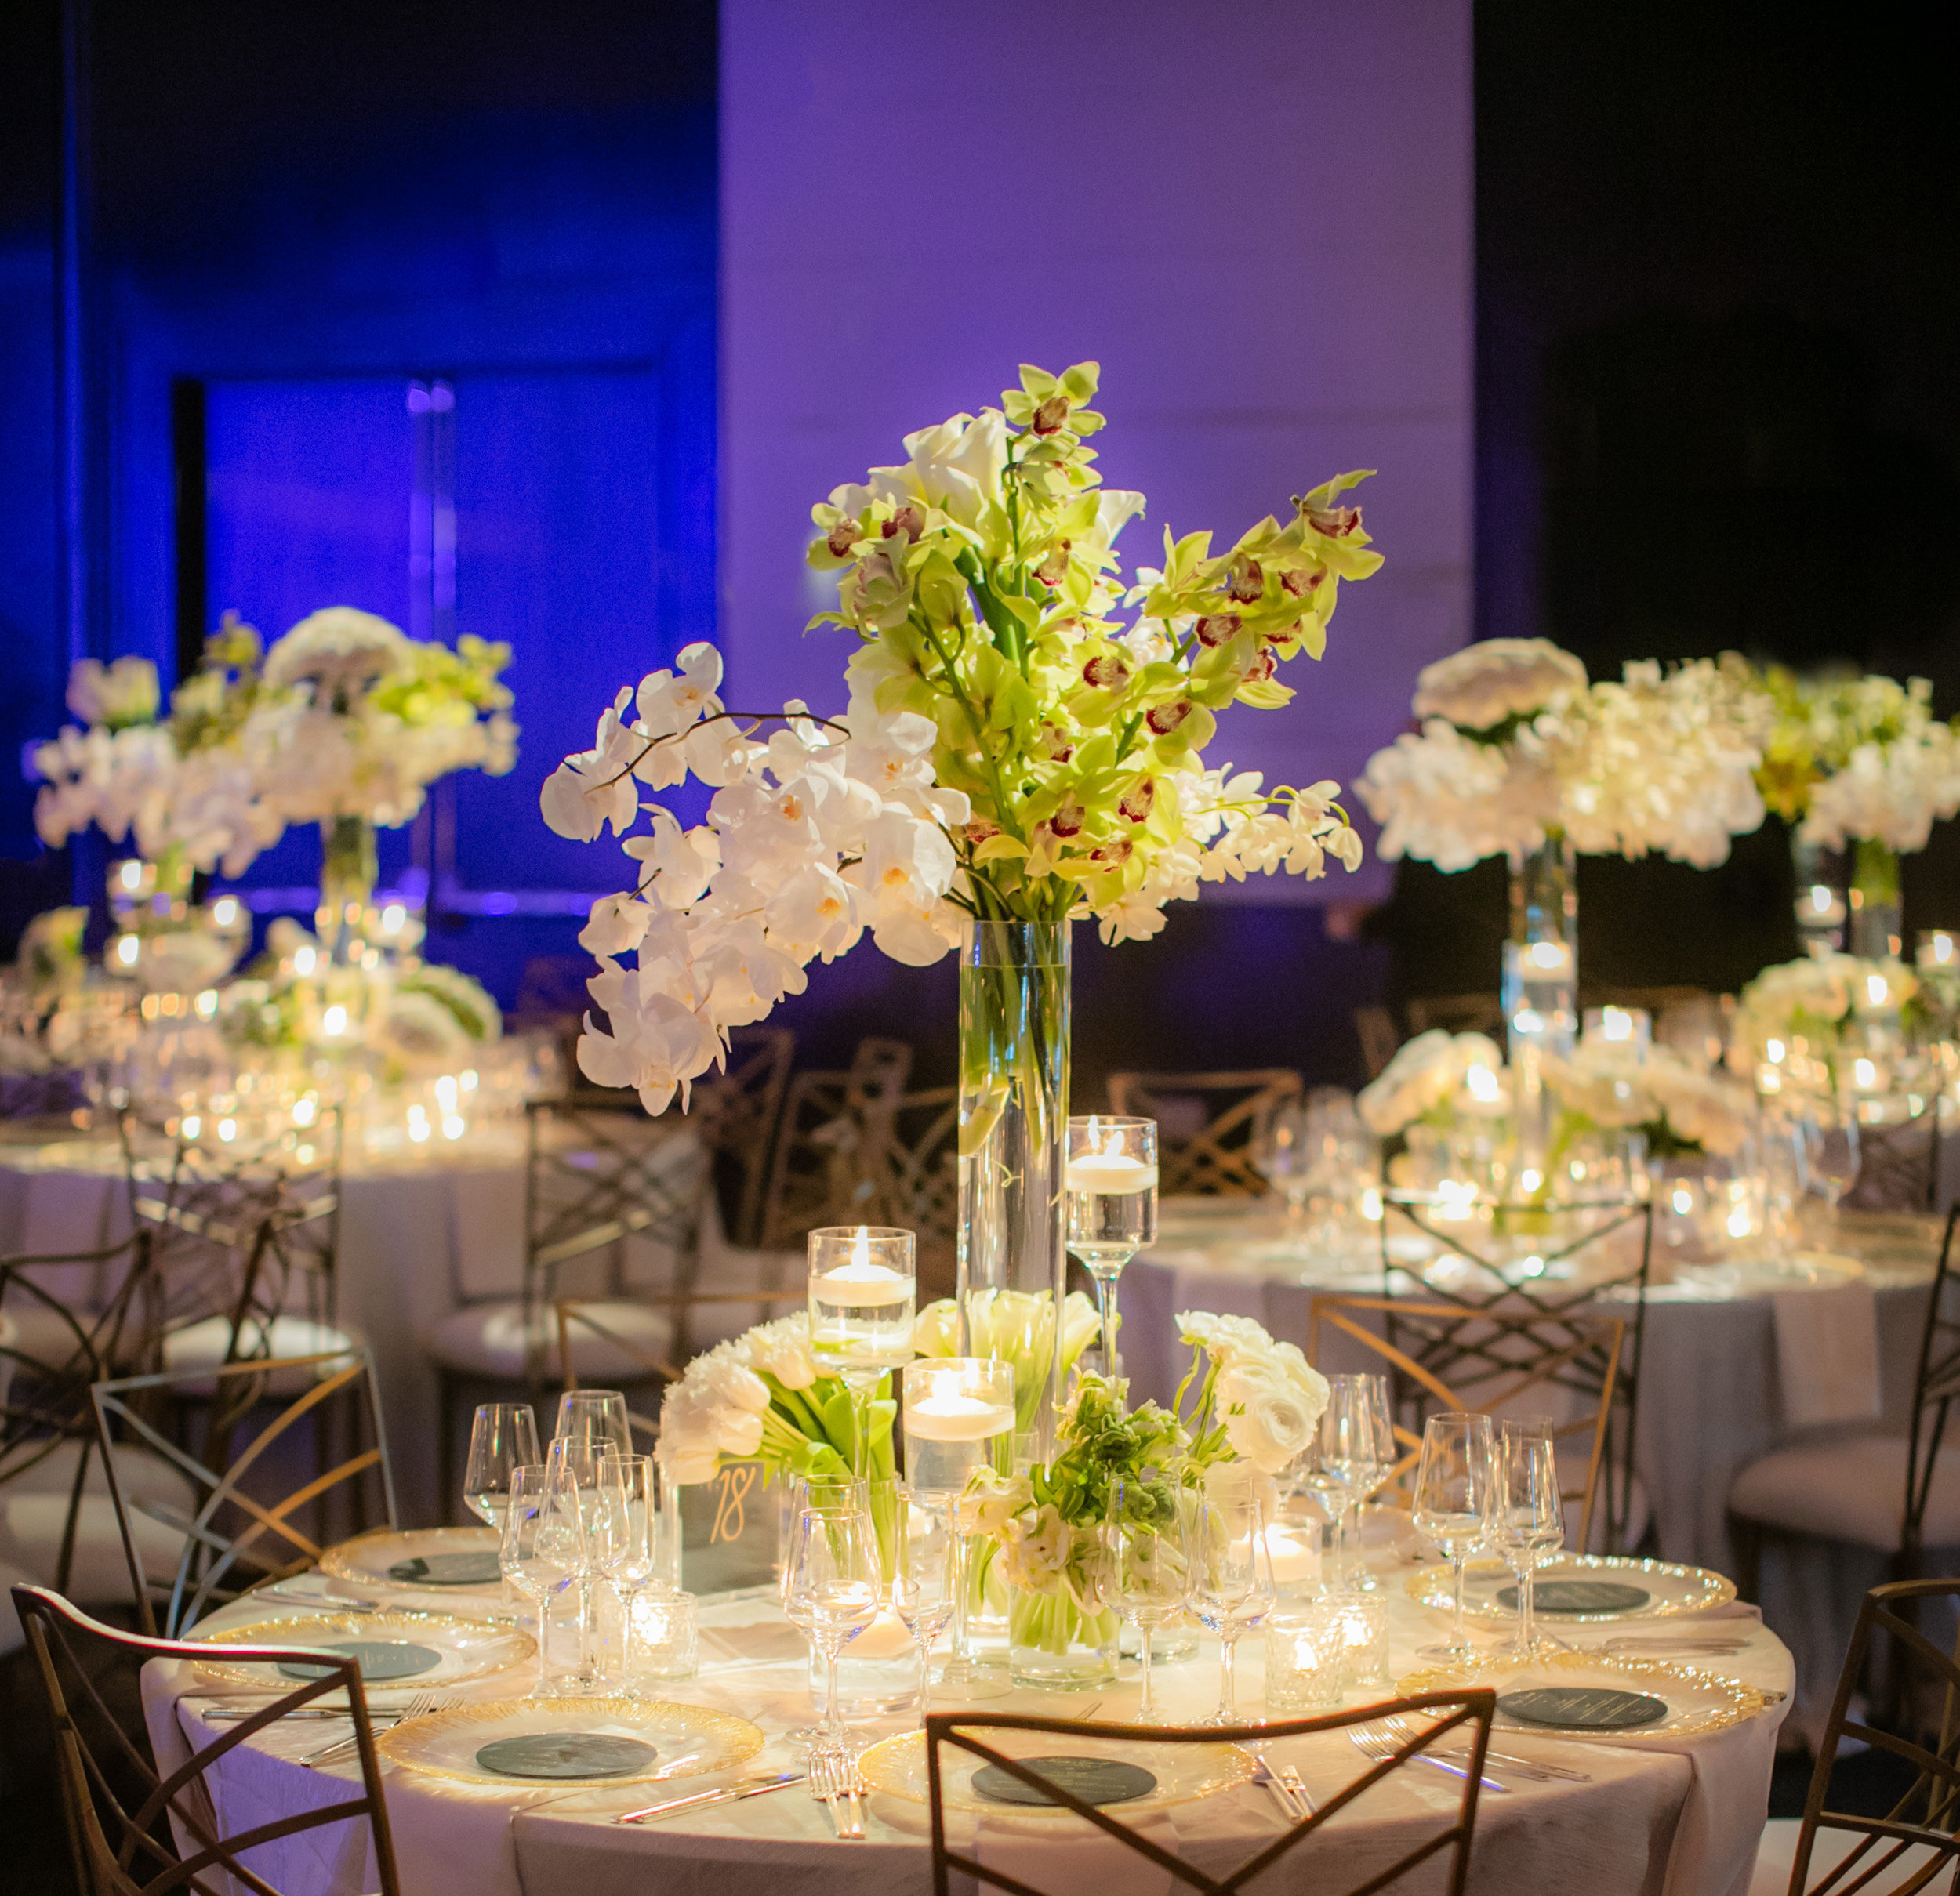 Andrea-Freeman-Events-NY-Wedding-Planner-Mandarin-Oriental-Wedding-9.jpg